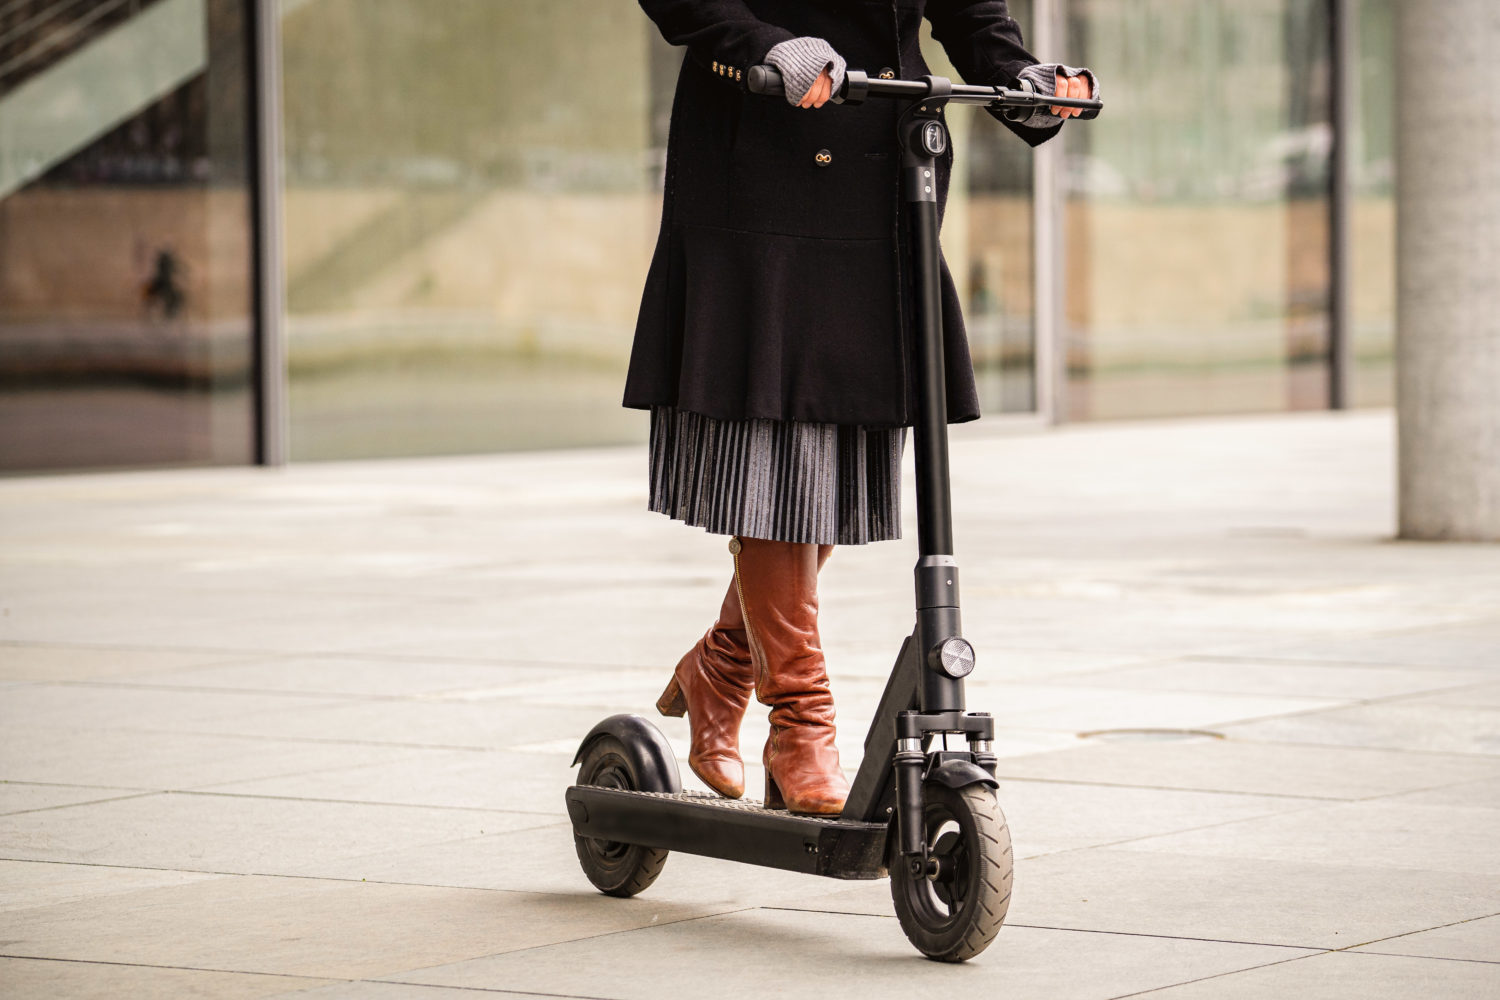 Pricing strategy in the electronic scooter market